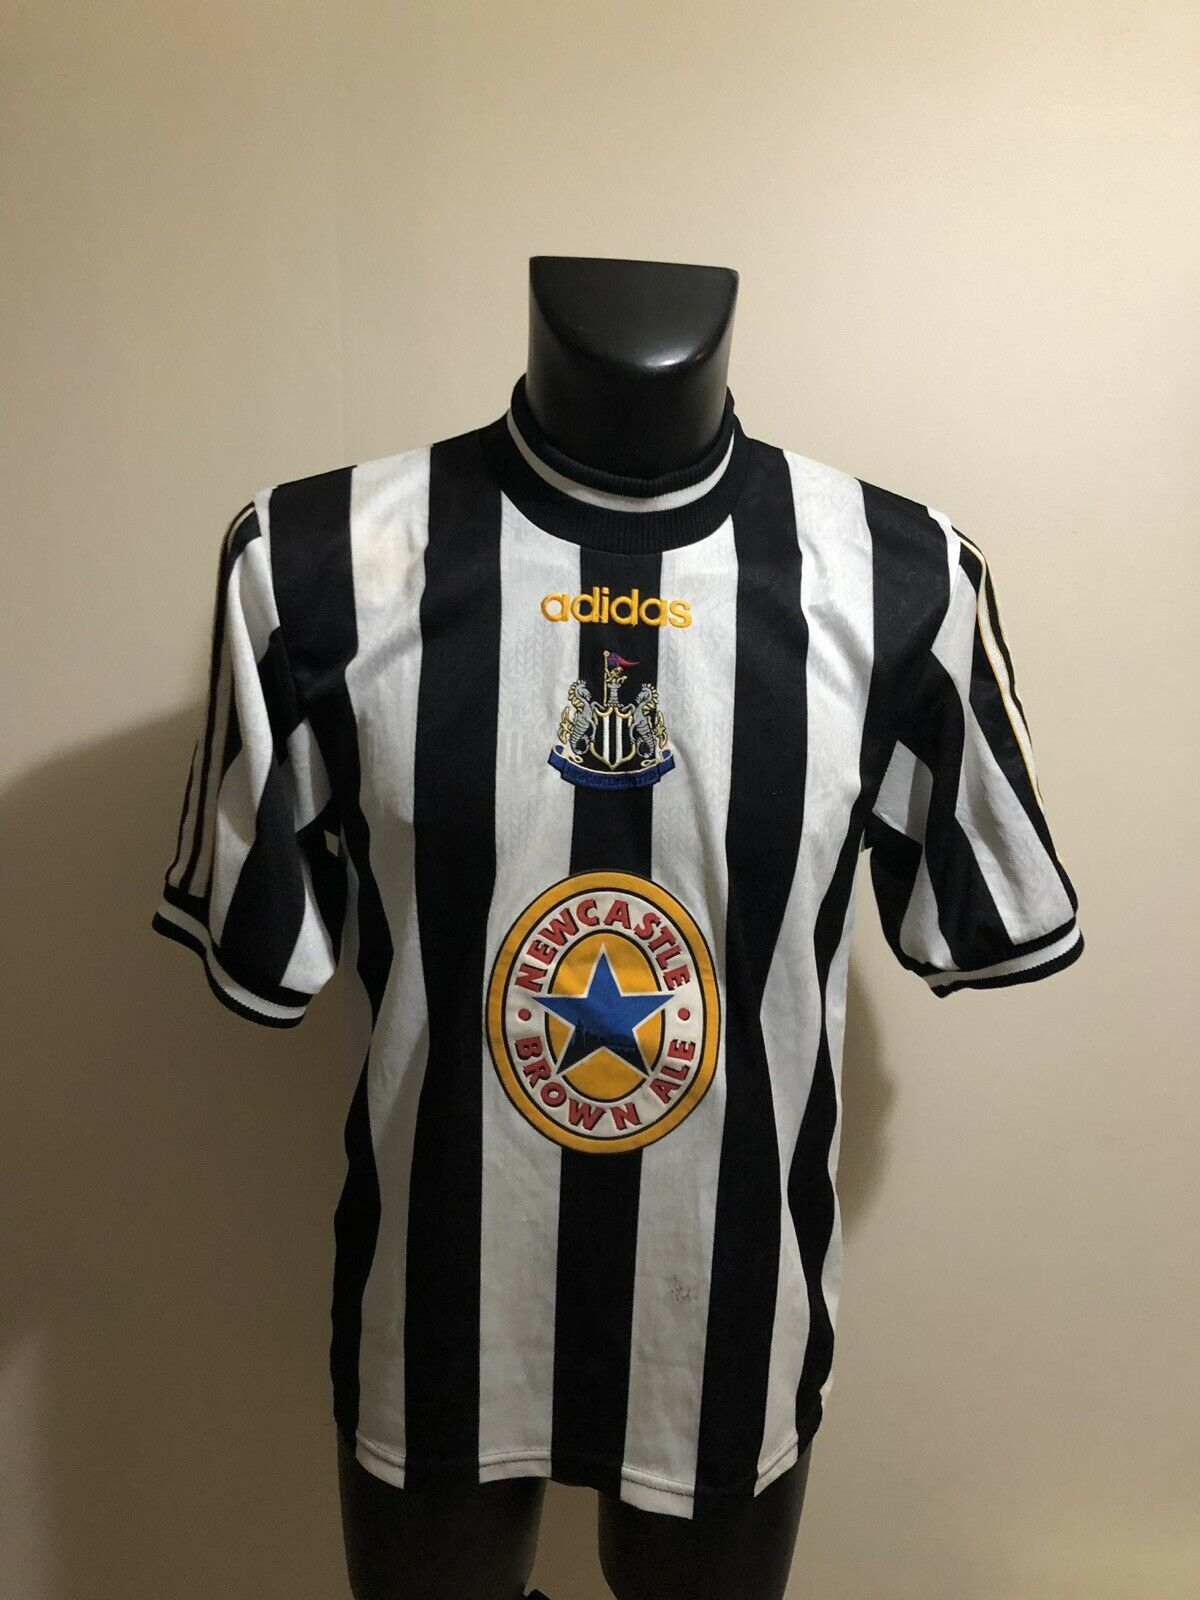 Maillot Foot Ancien Vintage Newcastle Dimensione S